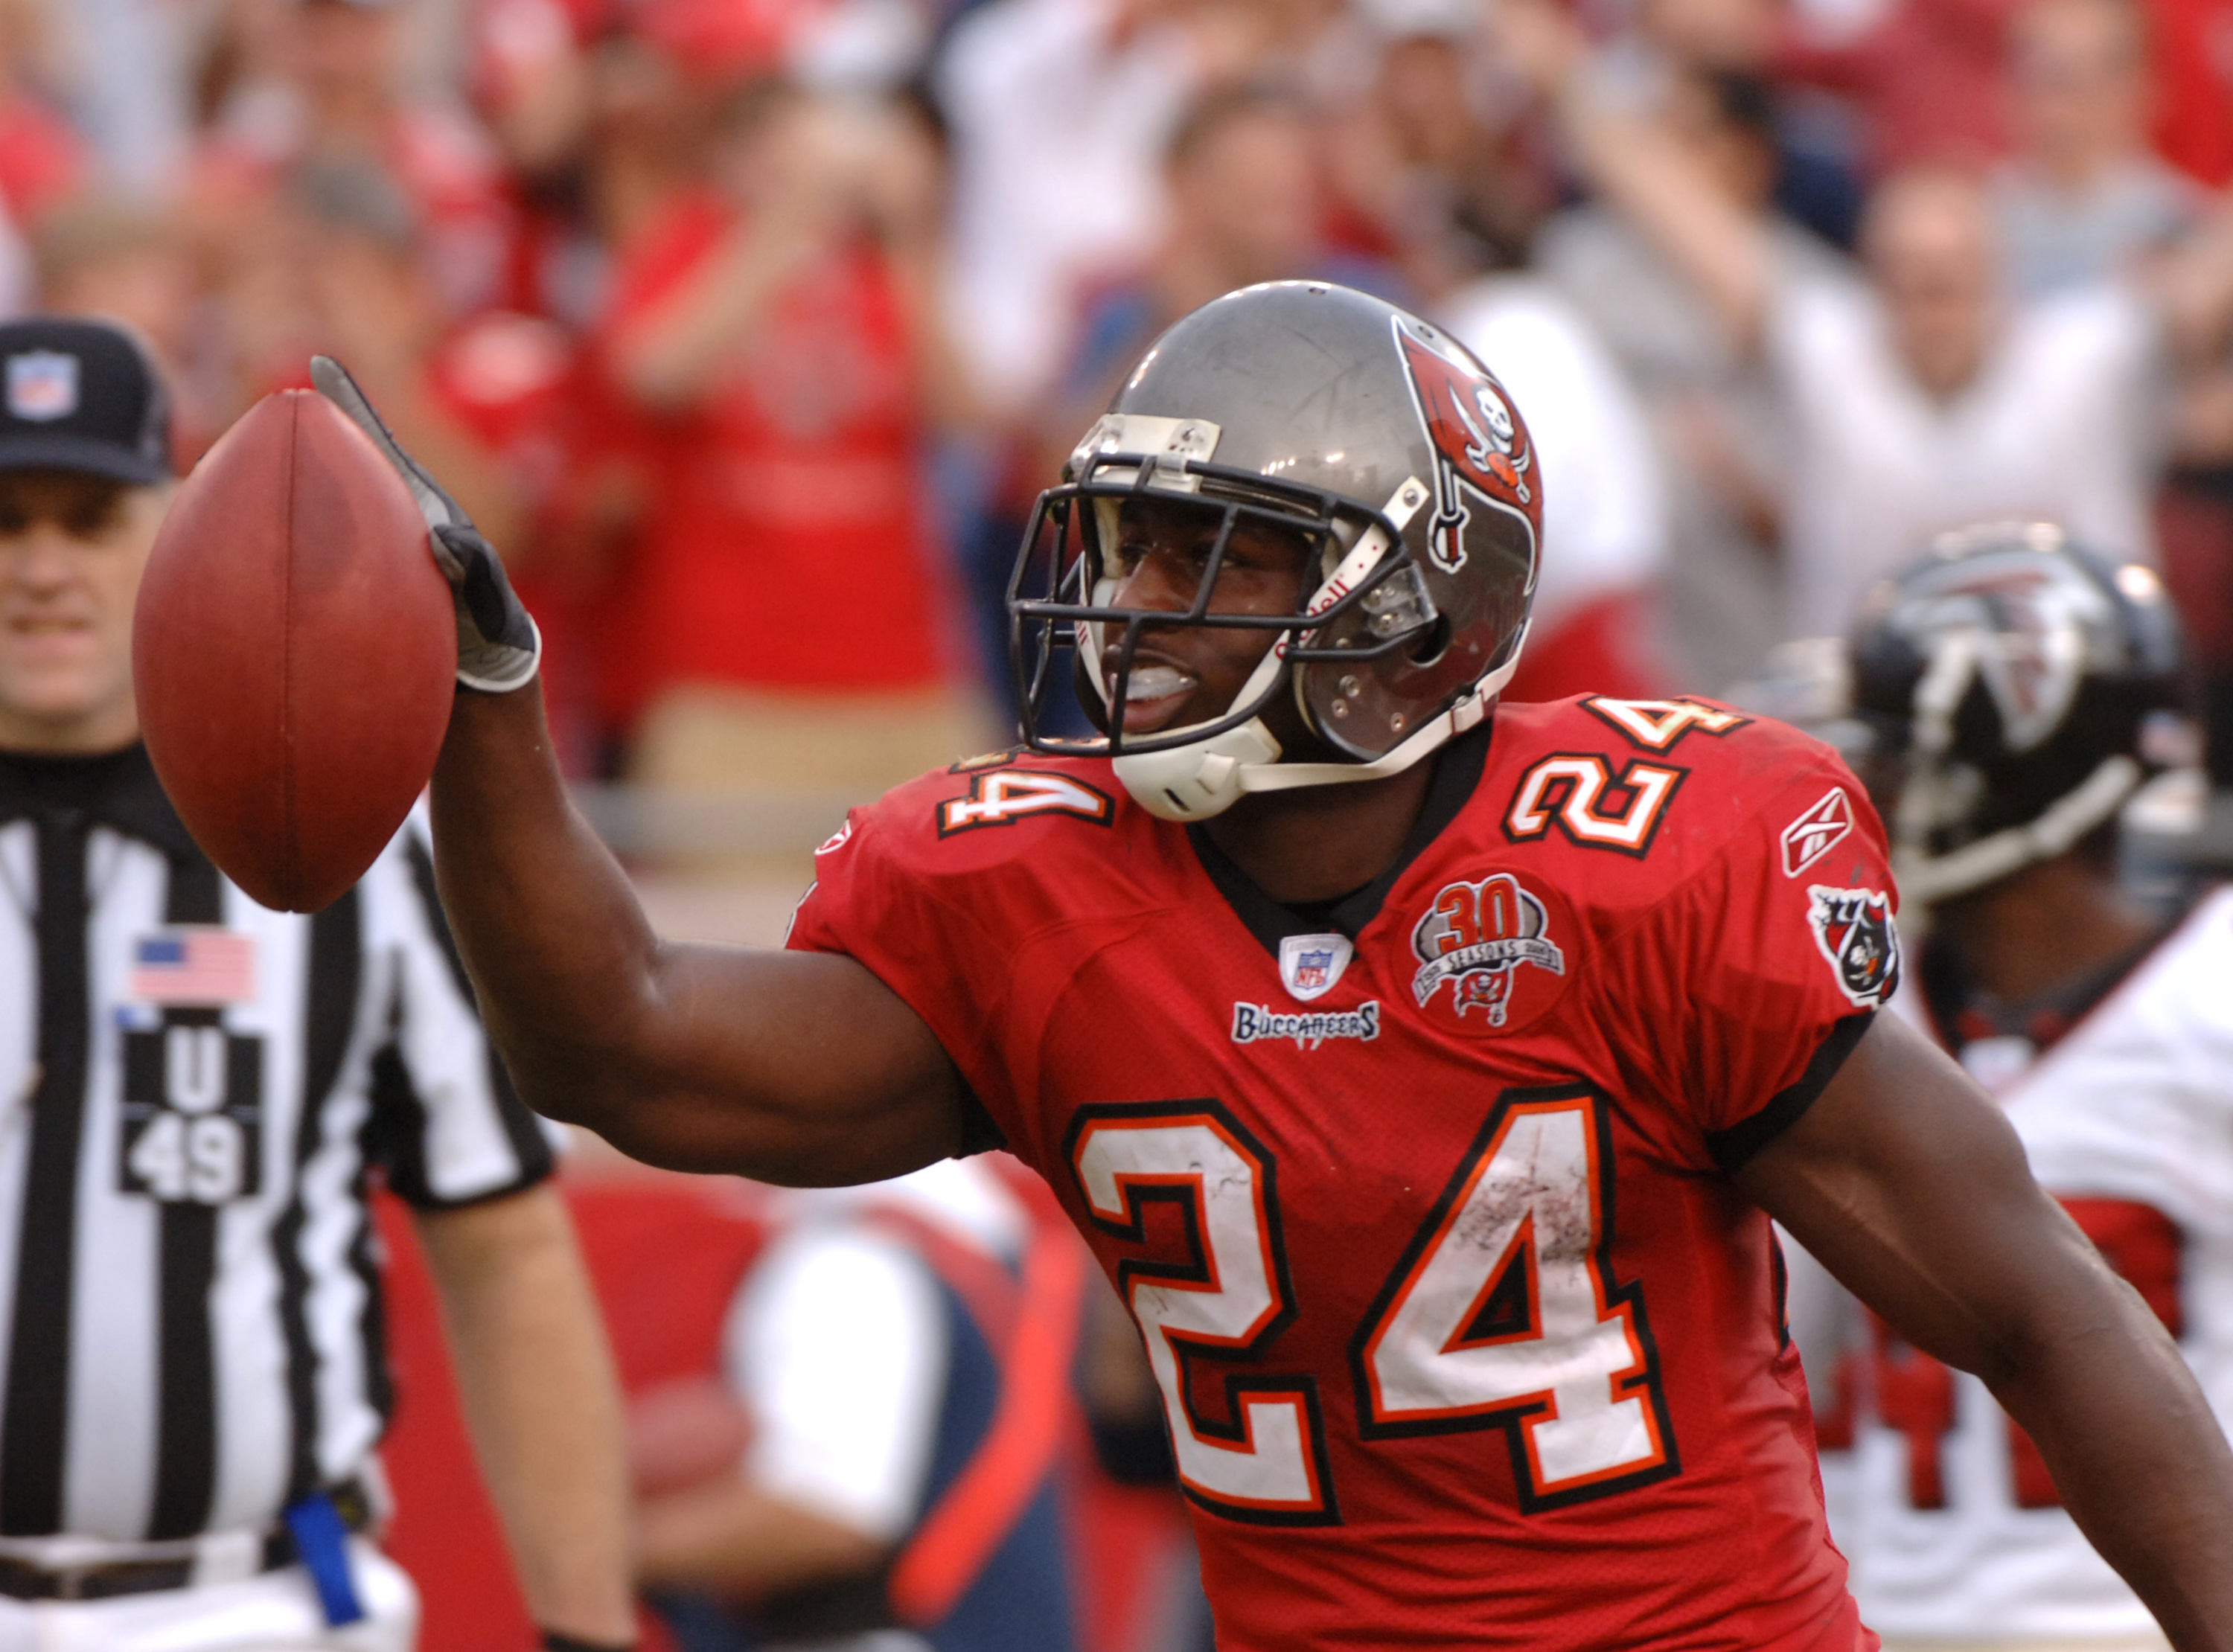 Tampa Bay Buccaneers runnning back Carnell Williams celebrates a touchdown run against the Atlanta Falcons Dec. 24, 2005 in Tampa.  Williams rushed for more than 100 yards as the Bucs won 27 - 23 in overtime.  (Photo by Al Messerschmidt/Getty Images)